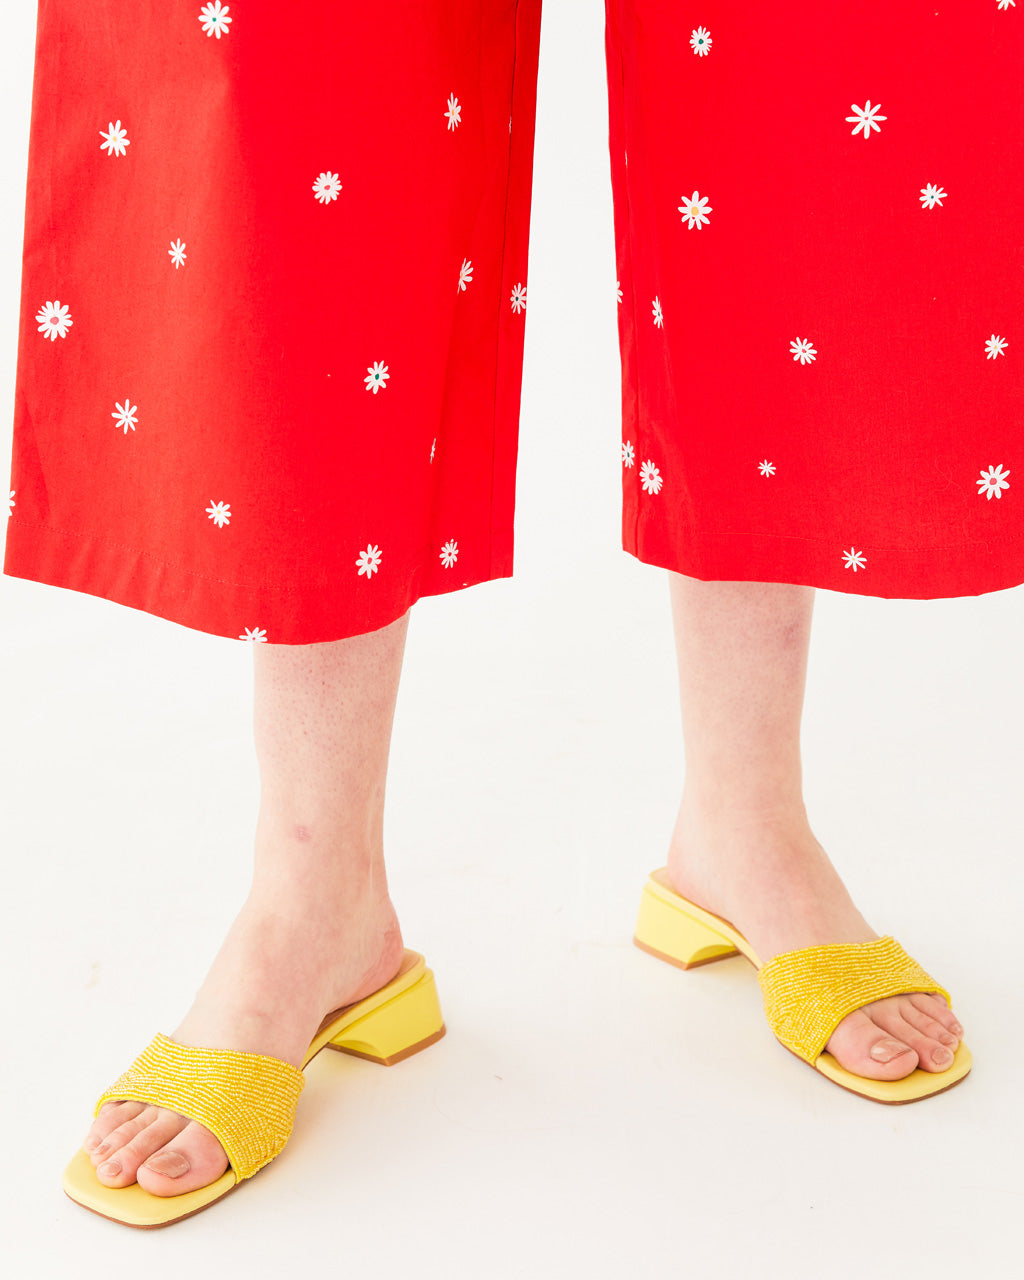 yellow slip on sandal featuring a beaded upper strap and a low heel shown on model wearing a red jumpsuit with a white daisy pattern